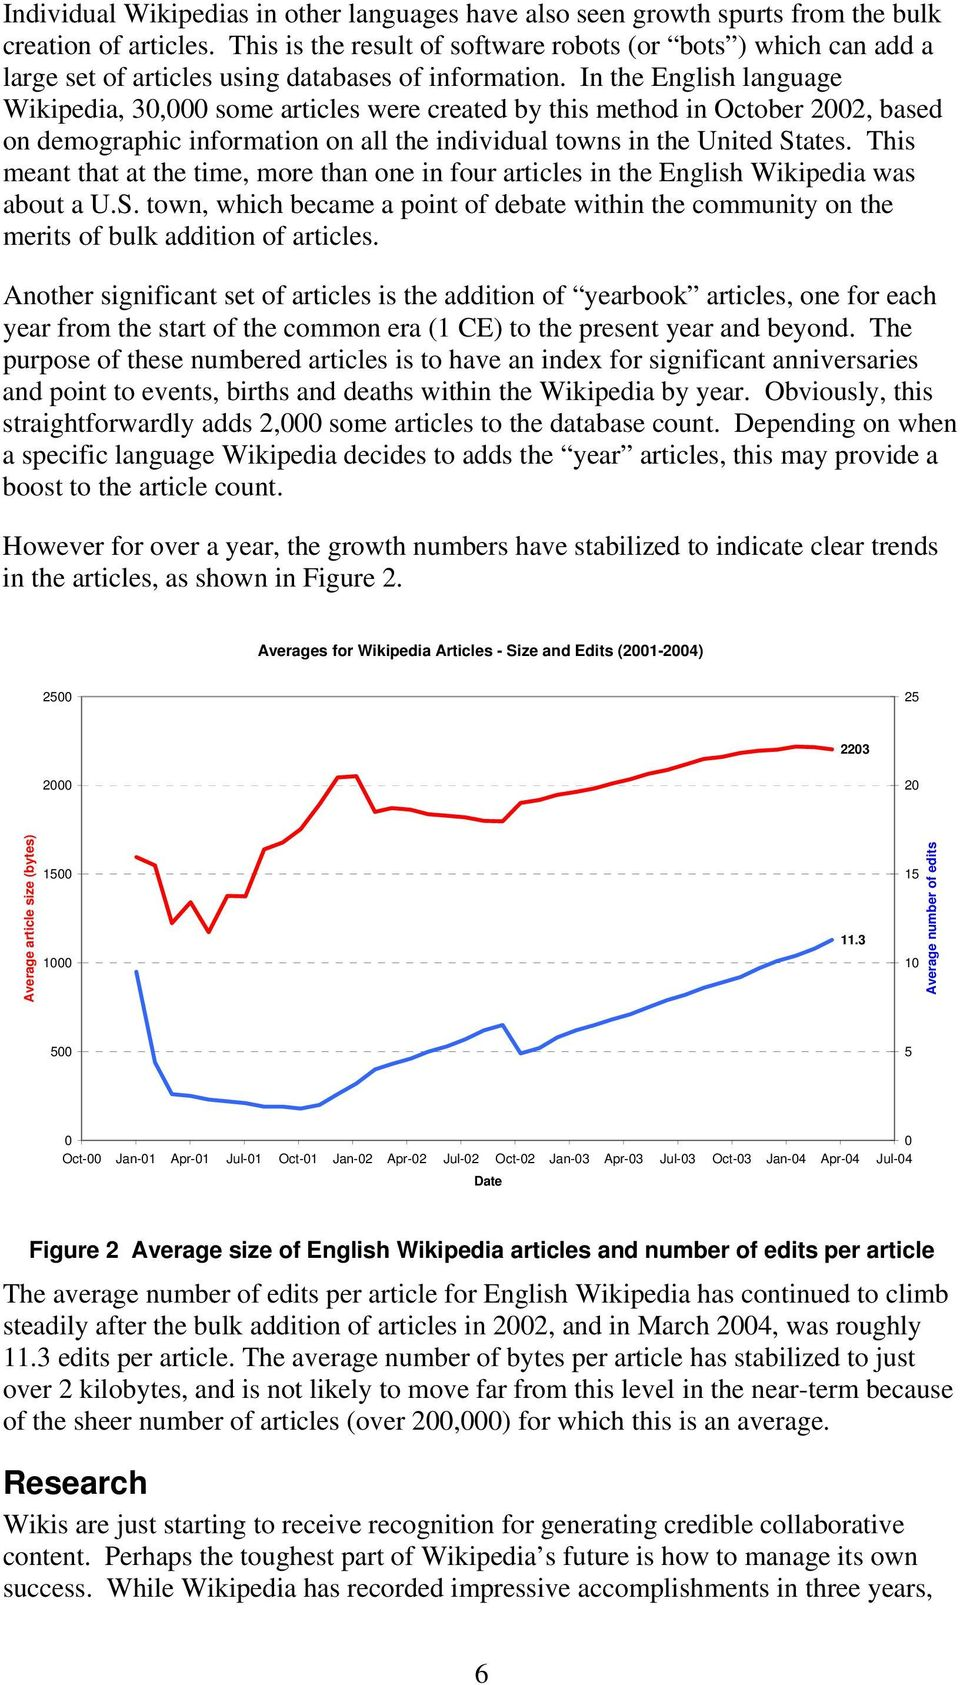 In the English language Wikipedia, 30,000 some articles were created by this method in October 2002, based on demographic information on all the individual towns in the United States.